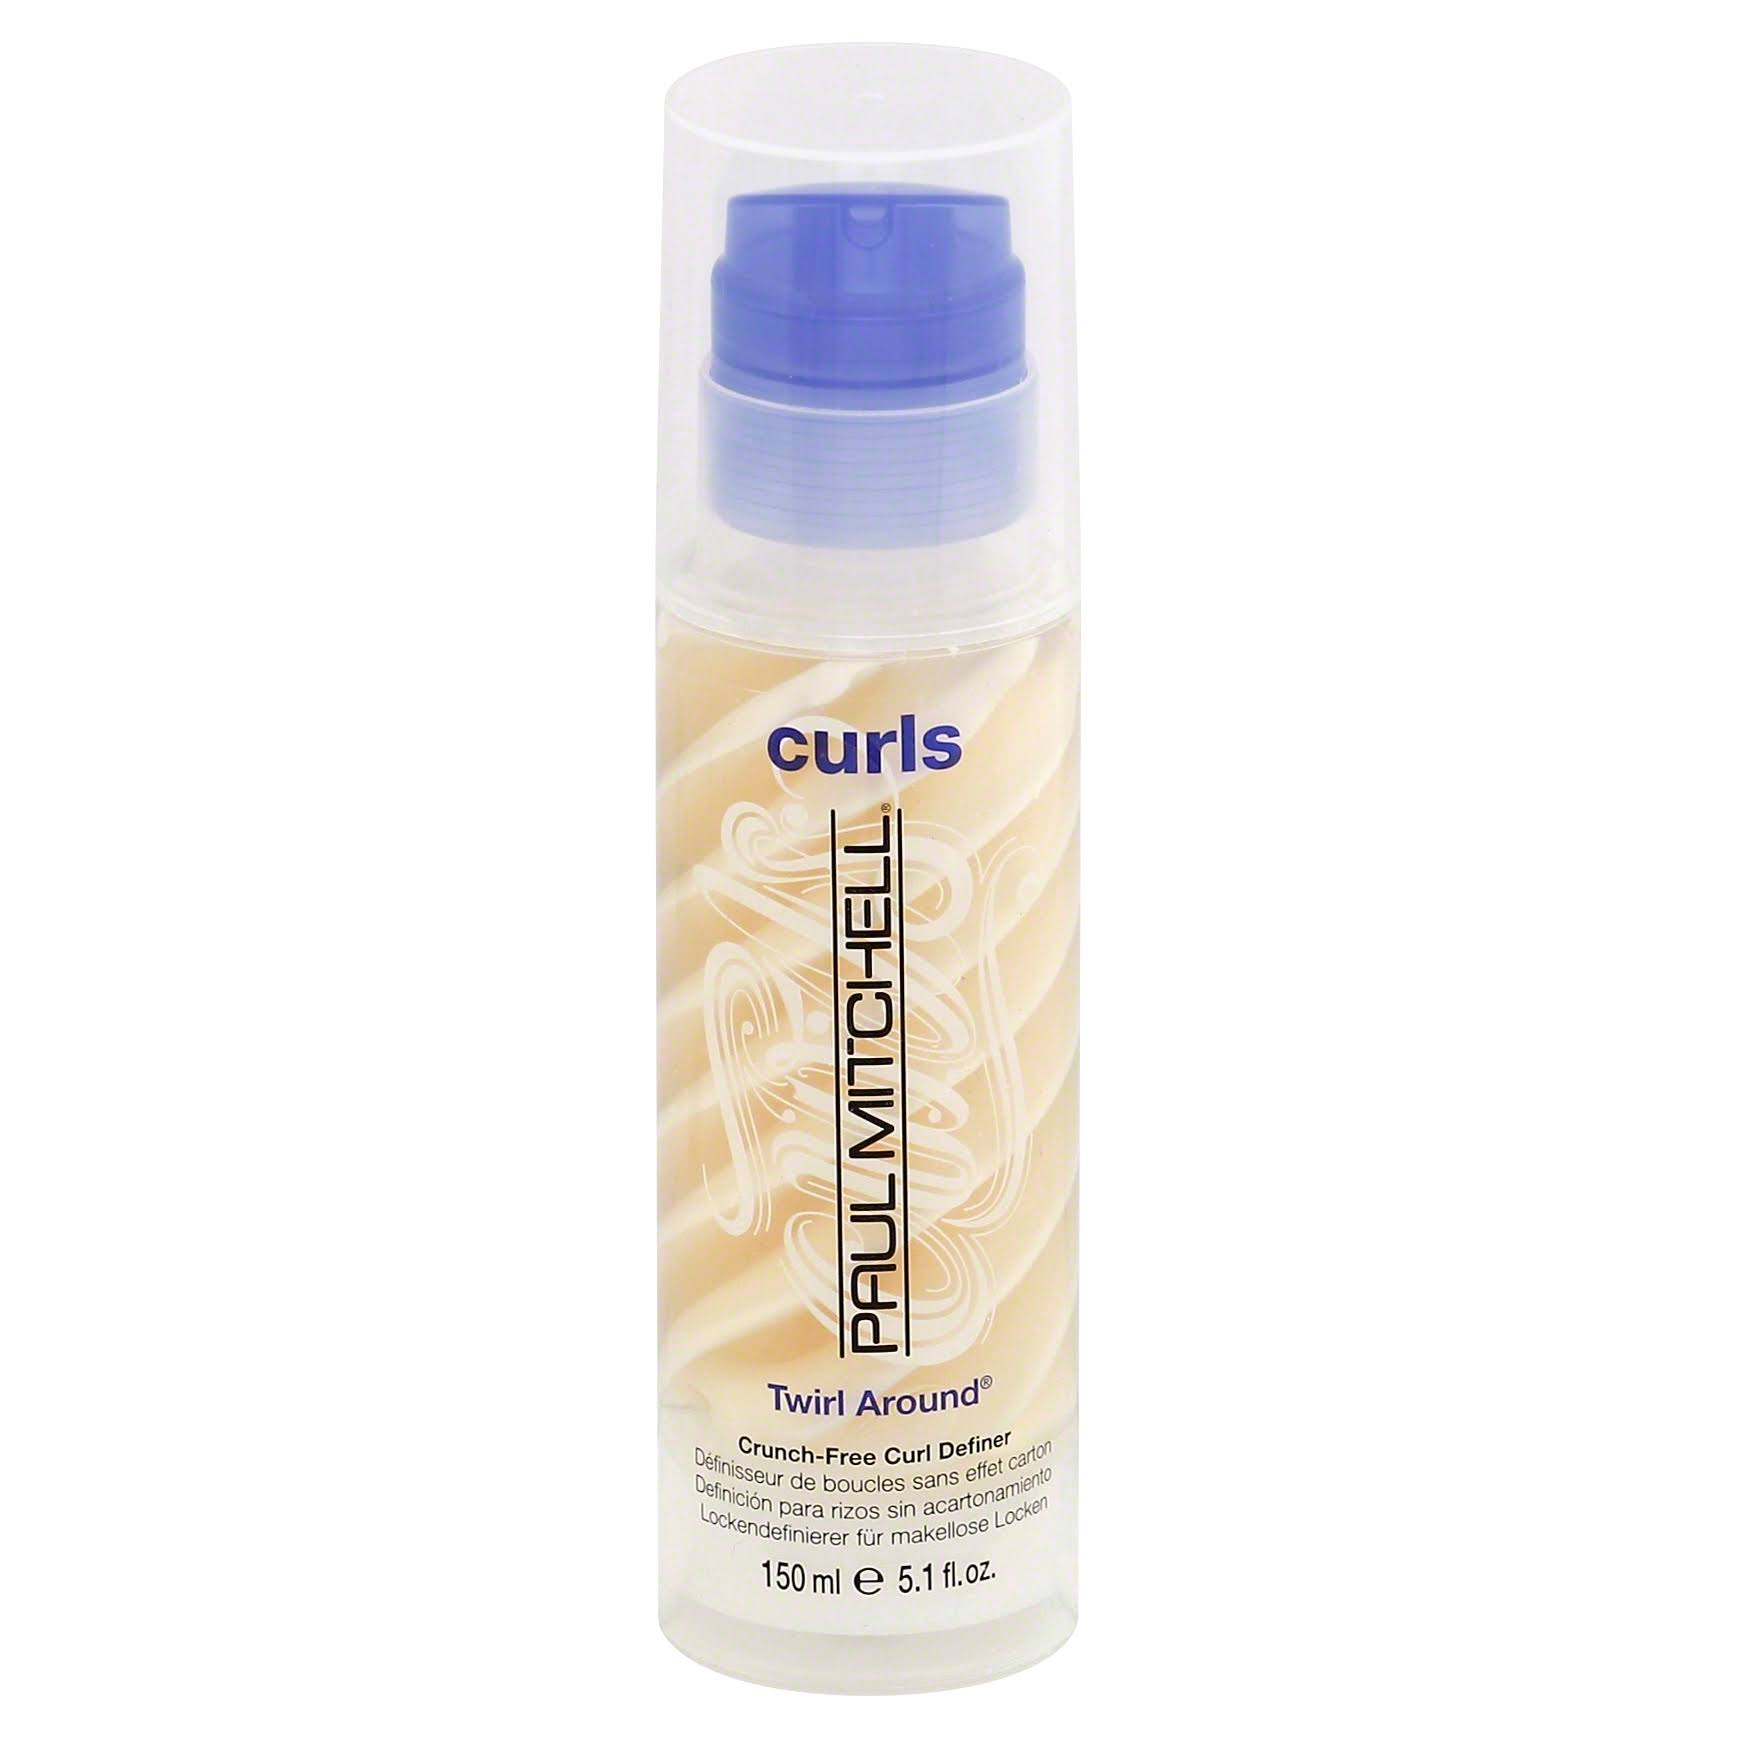 Paul Mitchell Twirl Around Curl Definer - 150ml